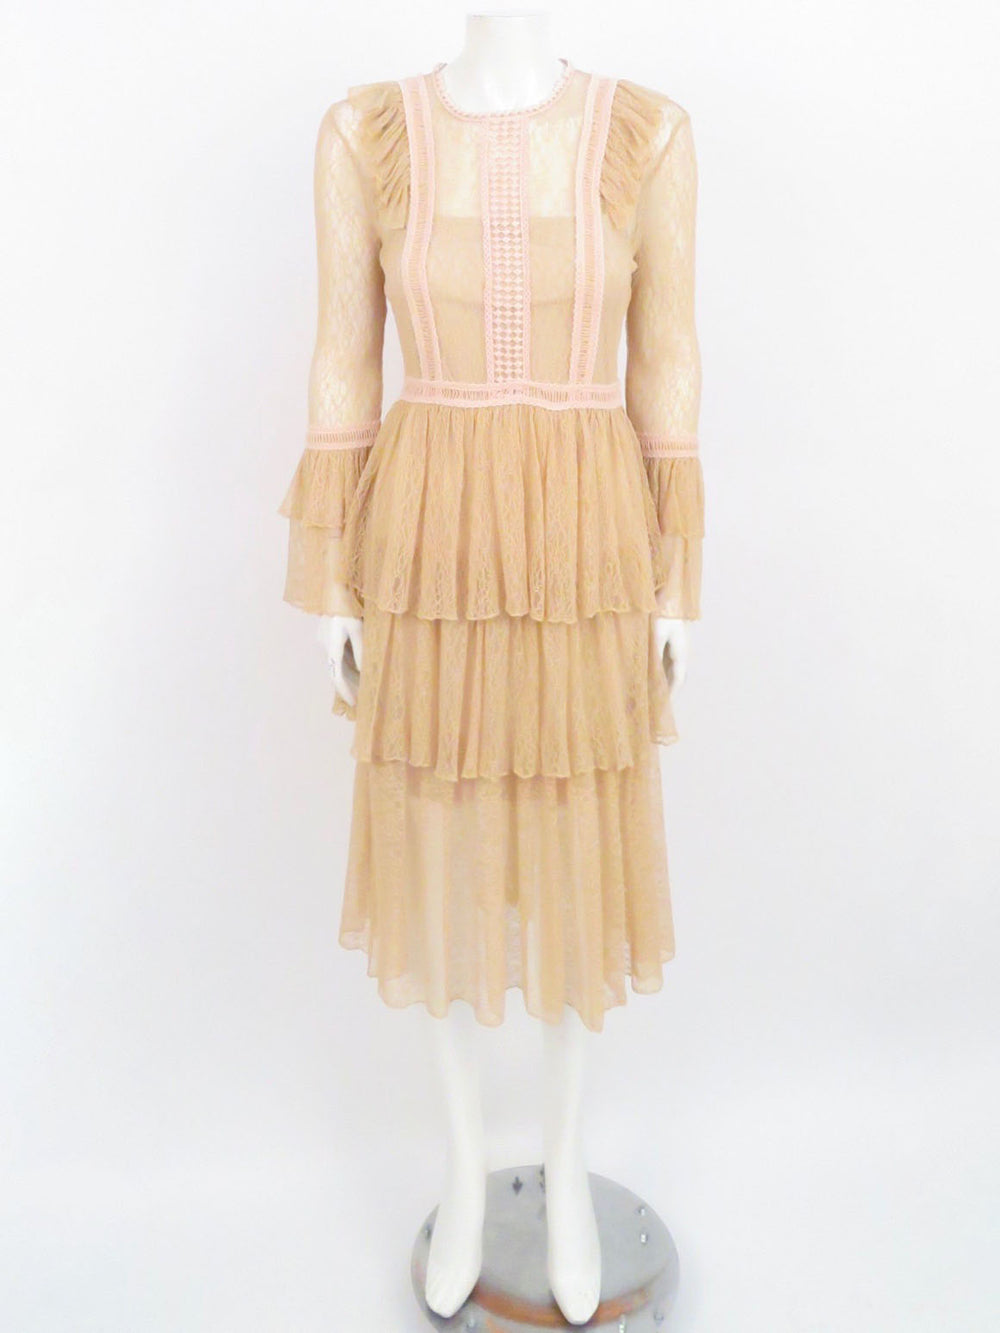 allison beige and pink lace frill dress. sheer beige lace, with pink trimming. back zippered closure. tonal slip included.